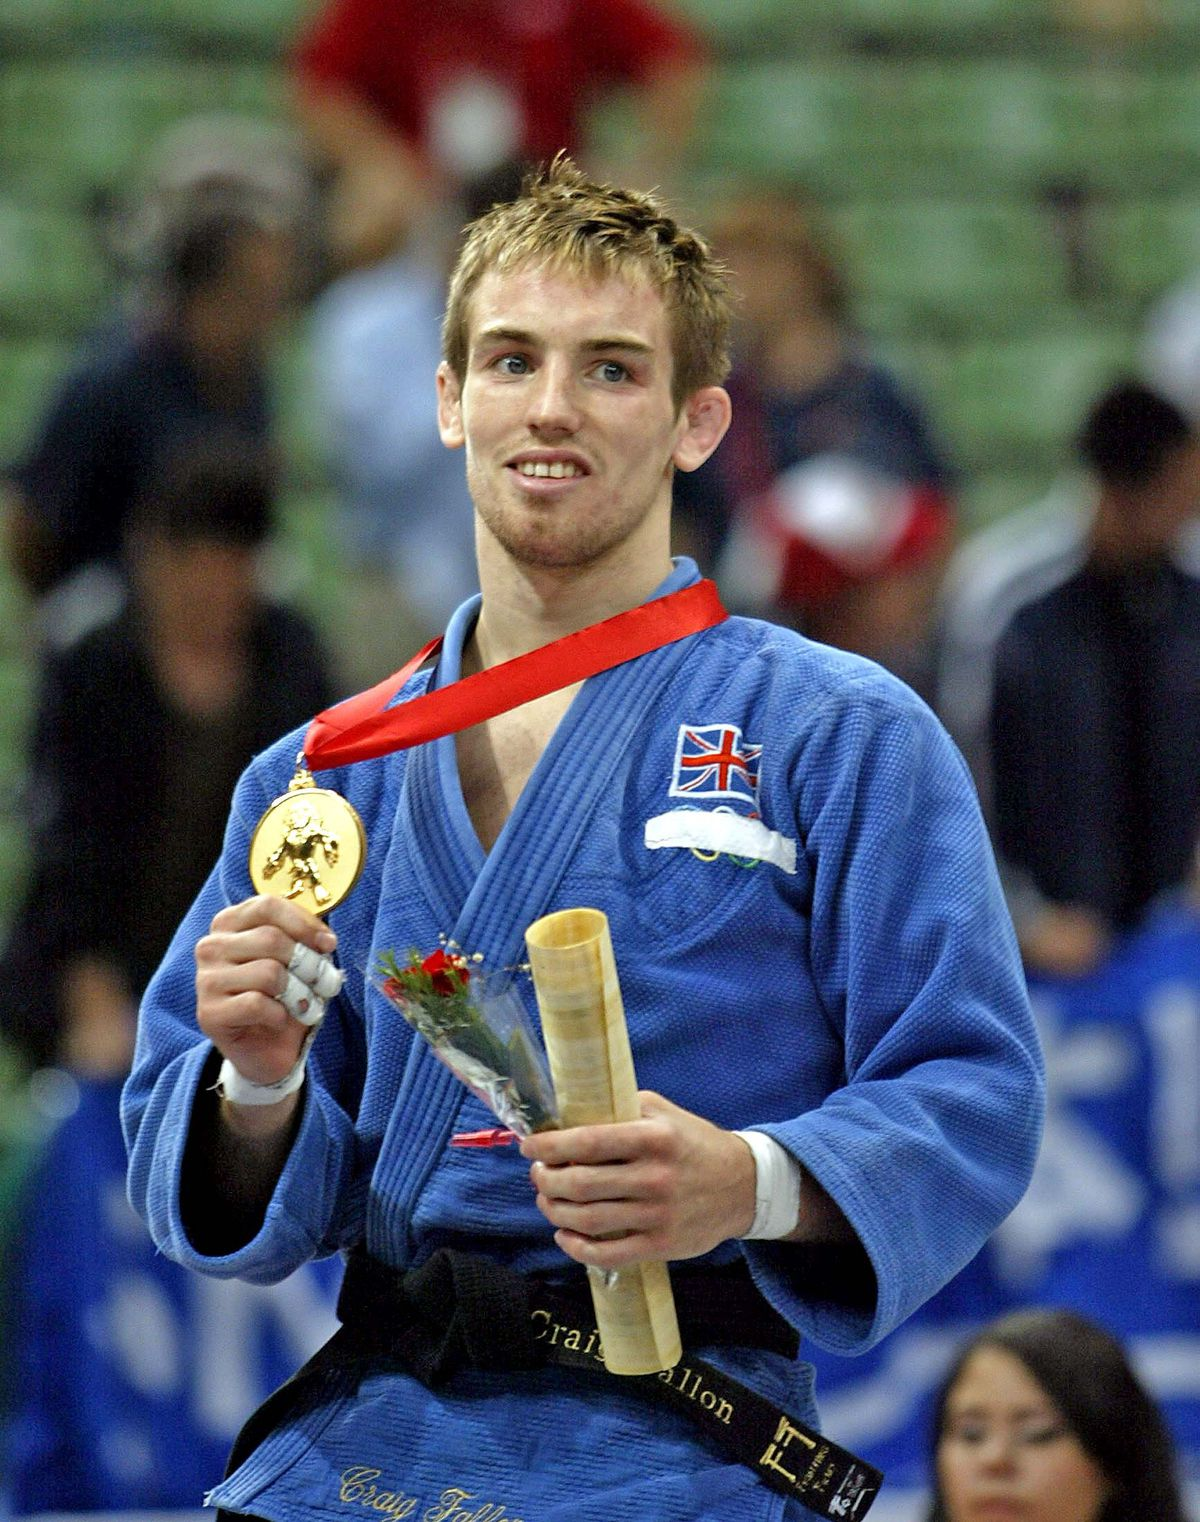 Craig Fallon celebrates after defeating Austria's Ludwig Paischer to win a gold medal during the World Judo Championships in Cairo, September 11, 2005